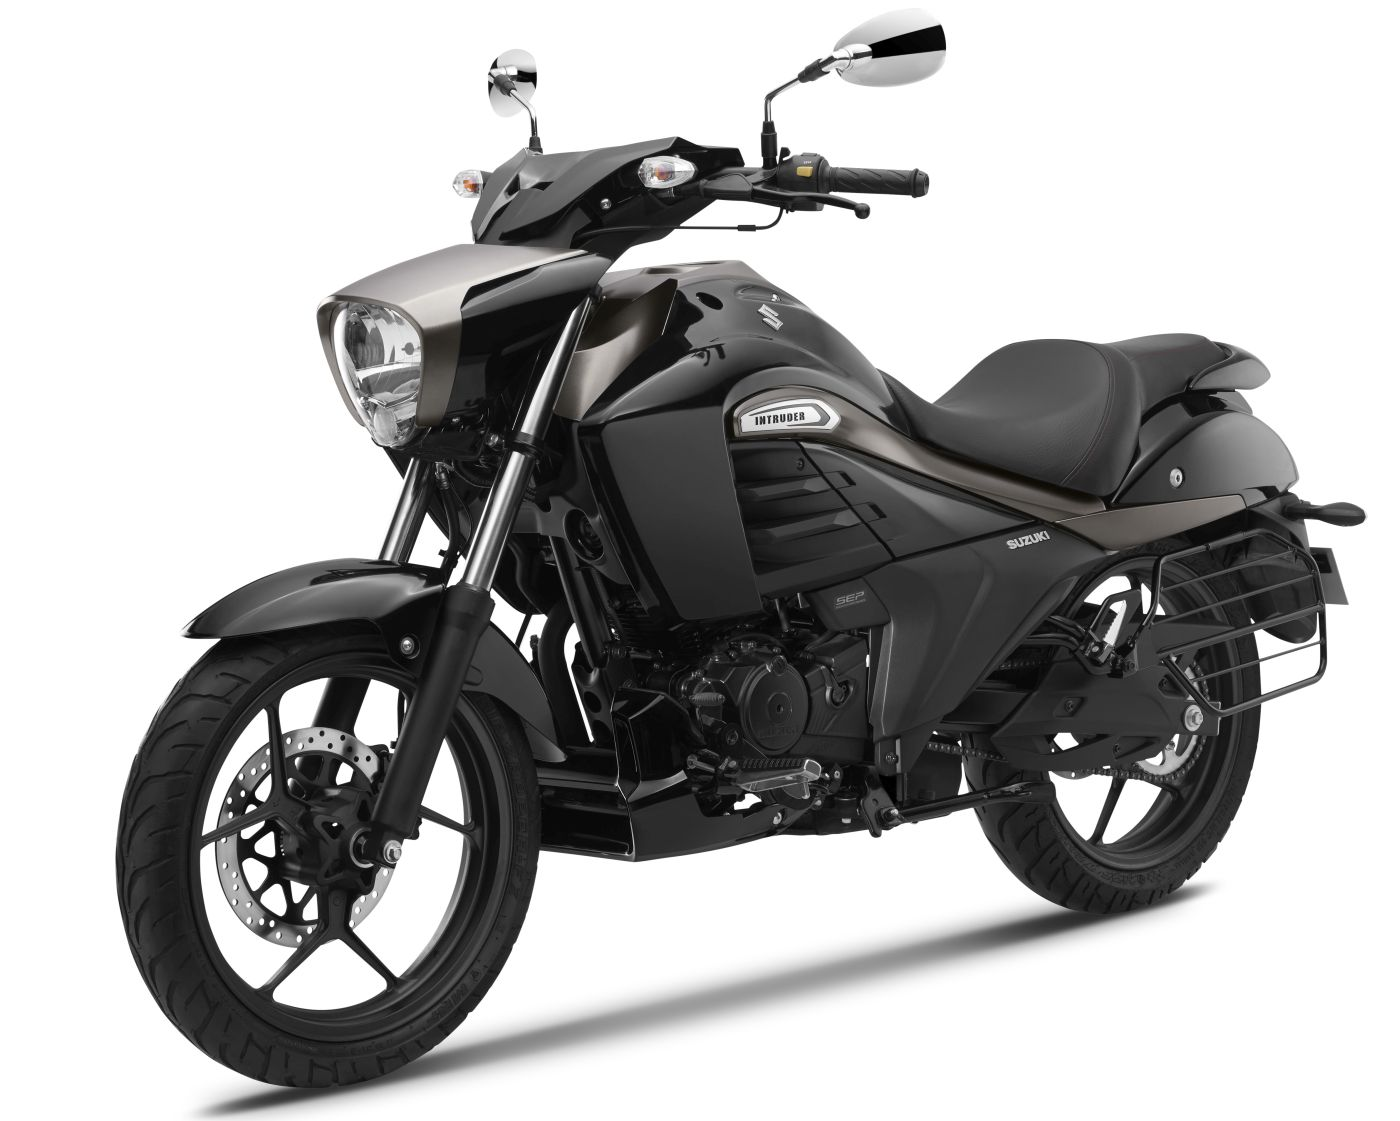 Suzuki 155cc Intruder The Cruiser Bike Launched In India